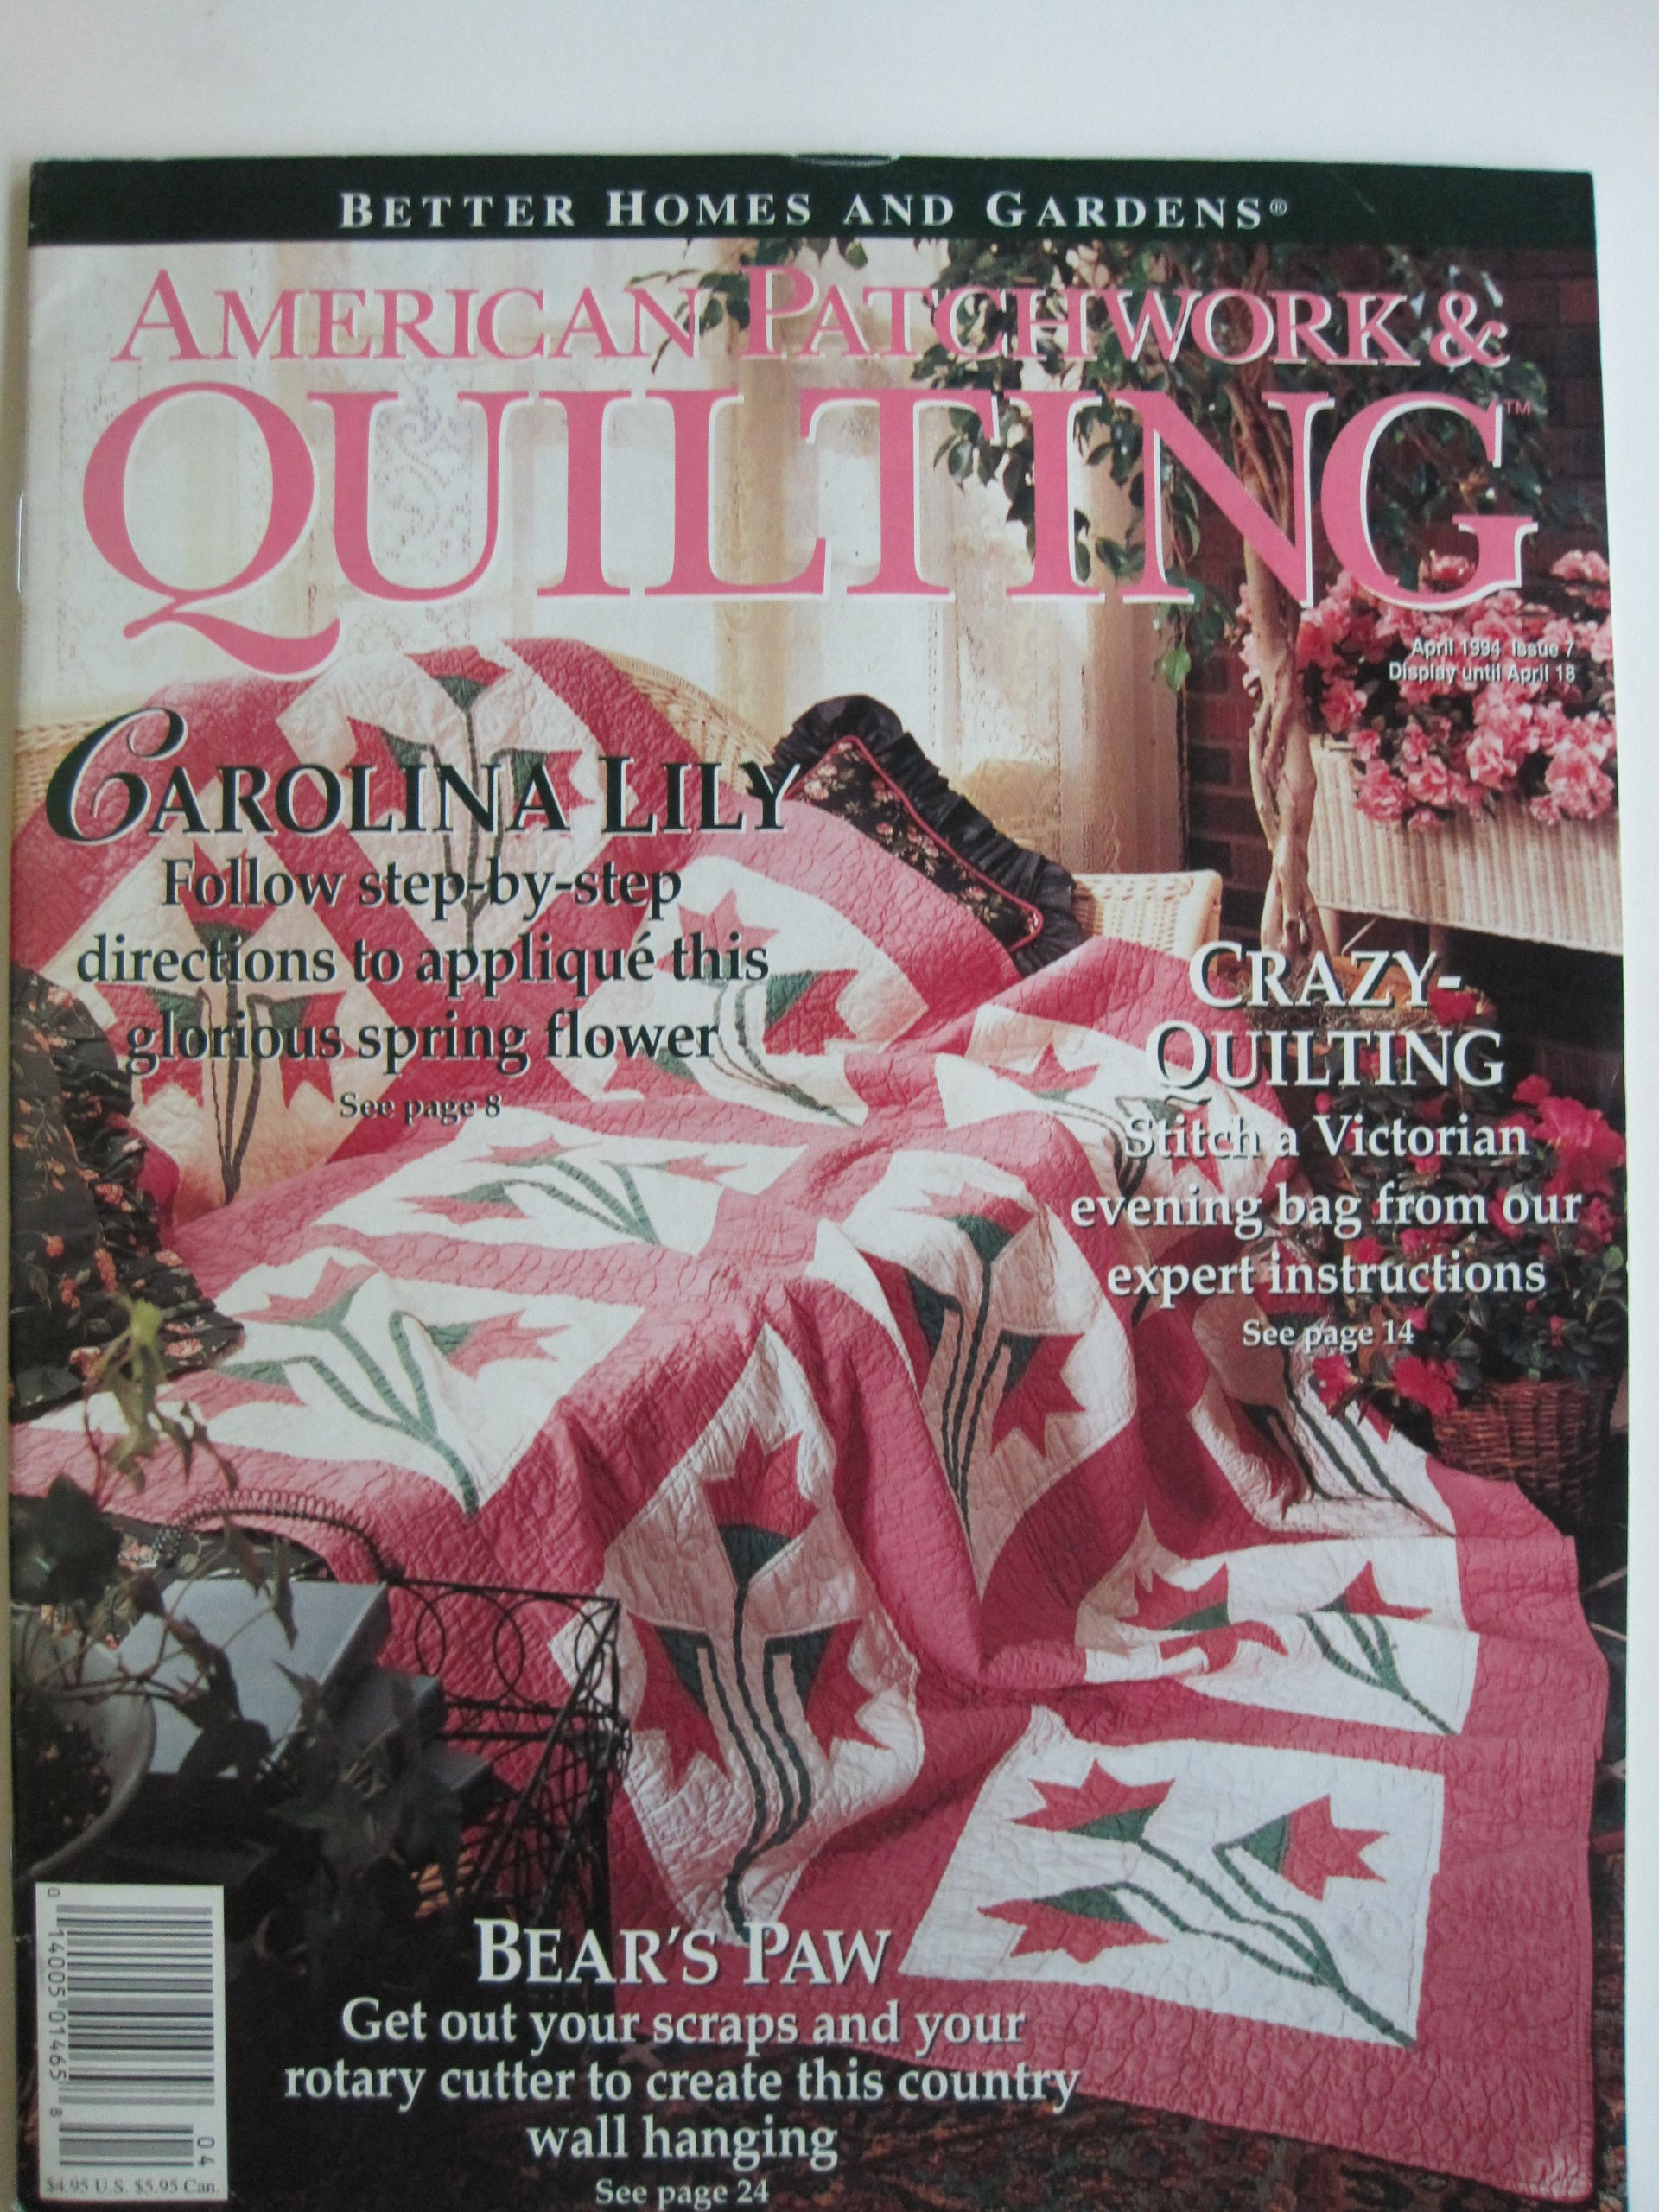 BETTER HOMES AND GARDENS AMERICAN PATCHWORK & QUILTING magazine April 1994 Issue 7 Volume 2 No. 2 (BH & G, Quilt, Quilter, Patterns, Designs, Carolina Lily, Bear's Paw, Crazy-Quilting, Quilt Guild, Applique)